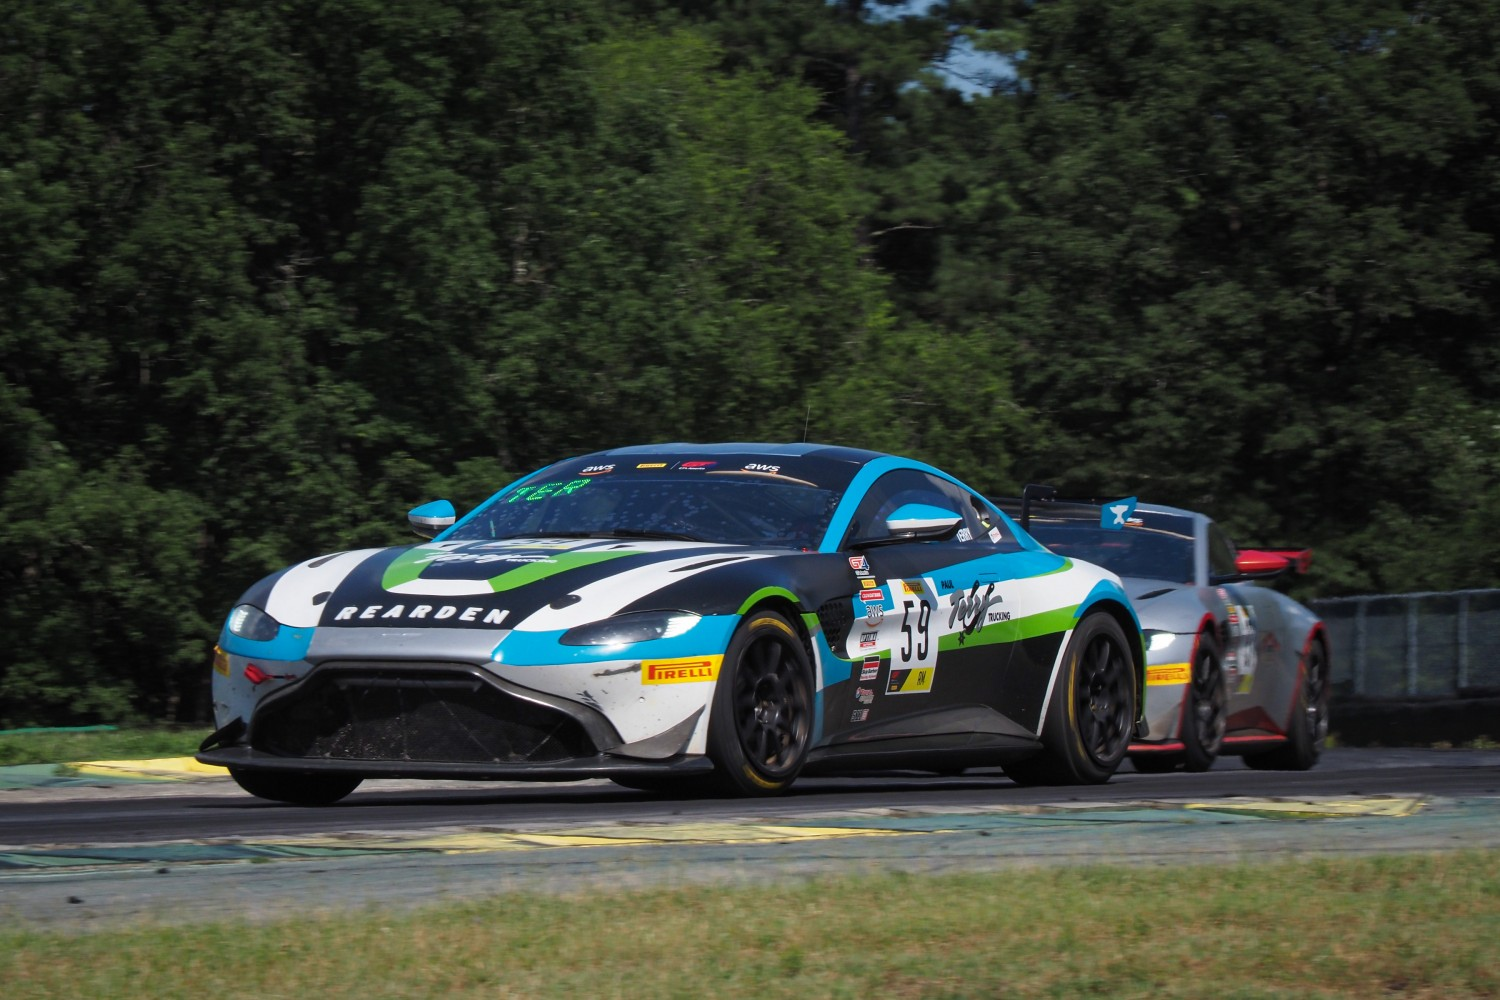 #59 GT4 Sprint, Am, Rearden Racing, Paul Terry, Aston Martin Vantage GT4\, SRO VIR 2020, Alton VA  | SRO Motorsports Group